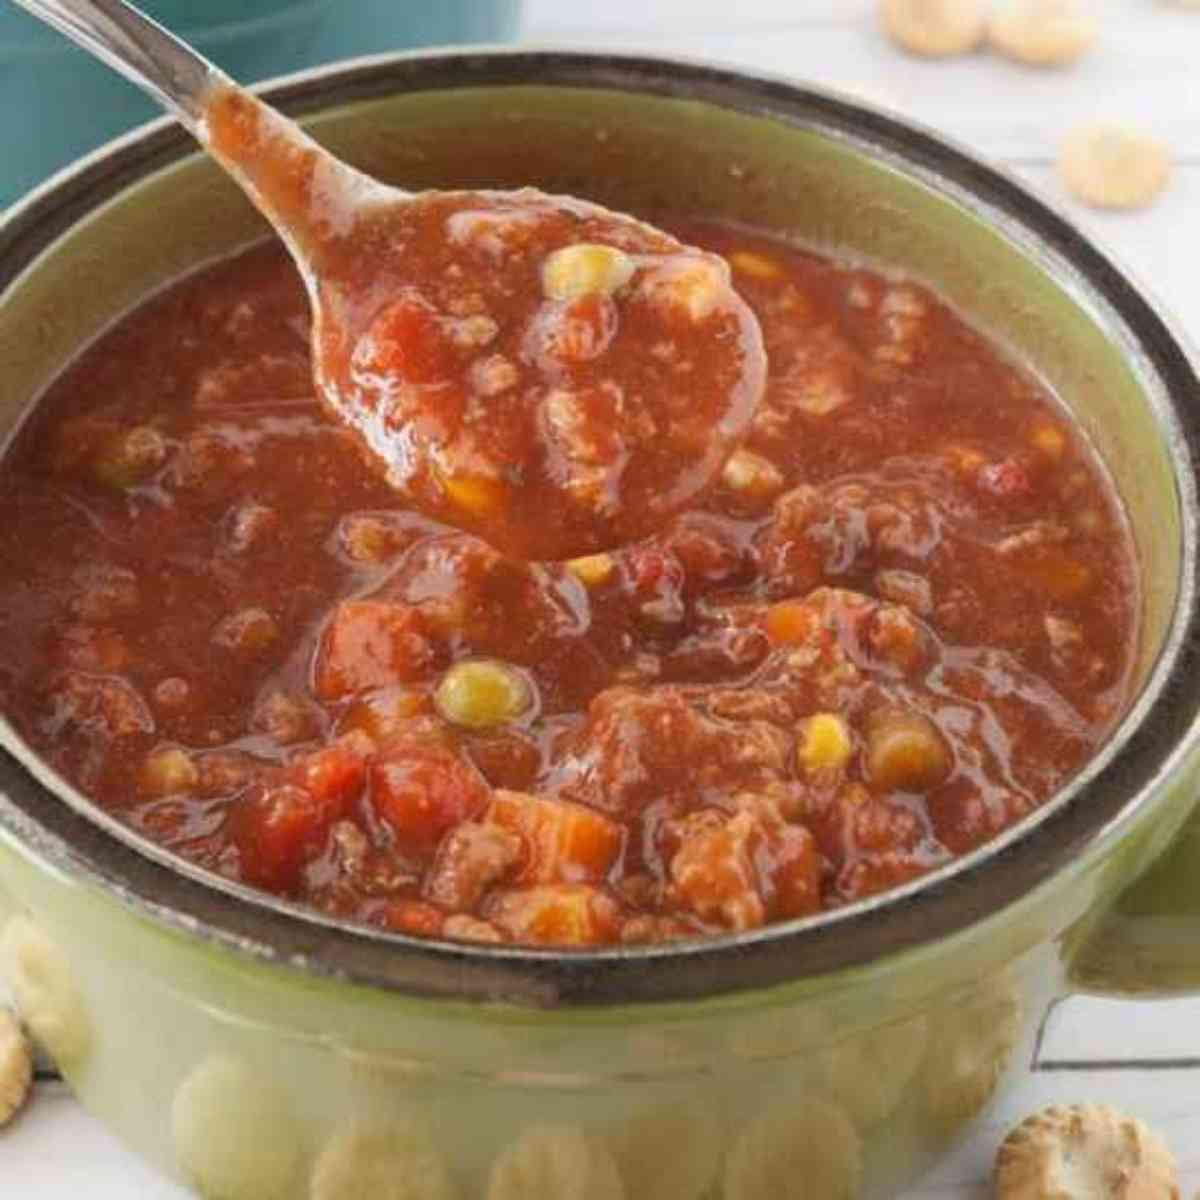 A big bowl of vegetable beef soup